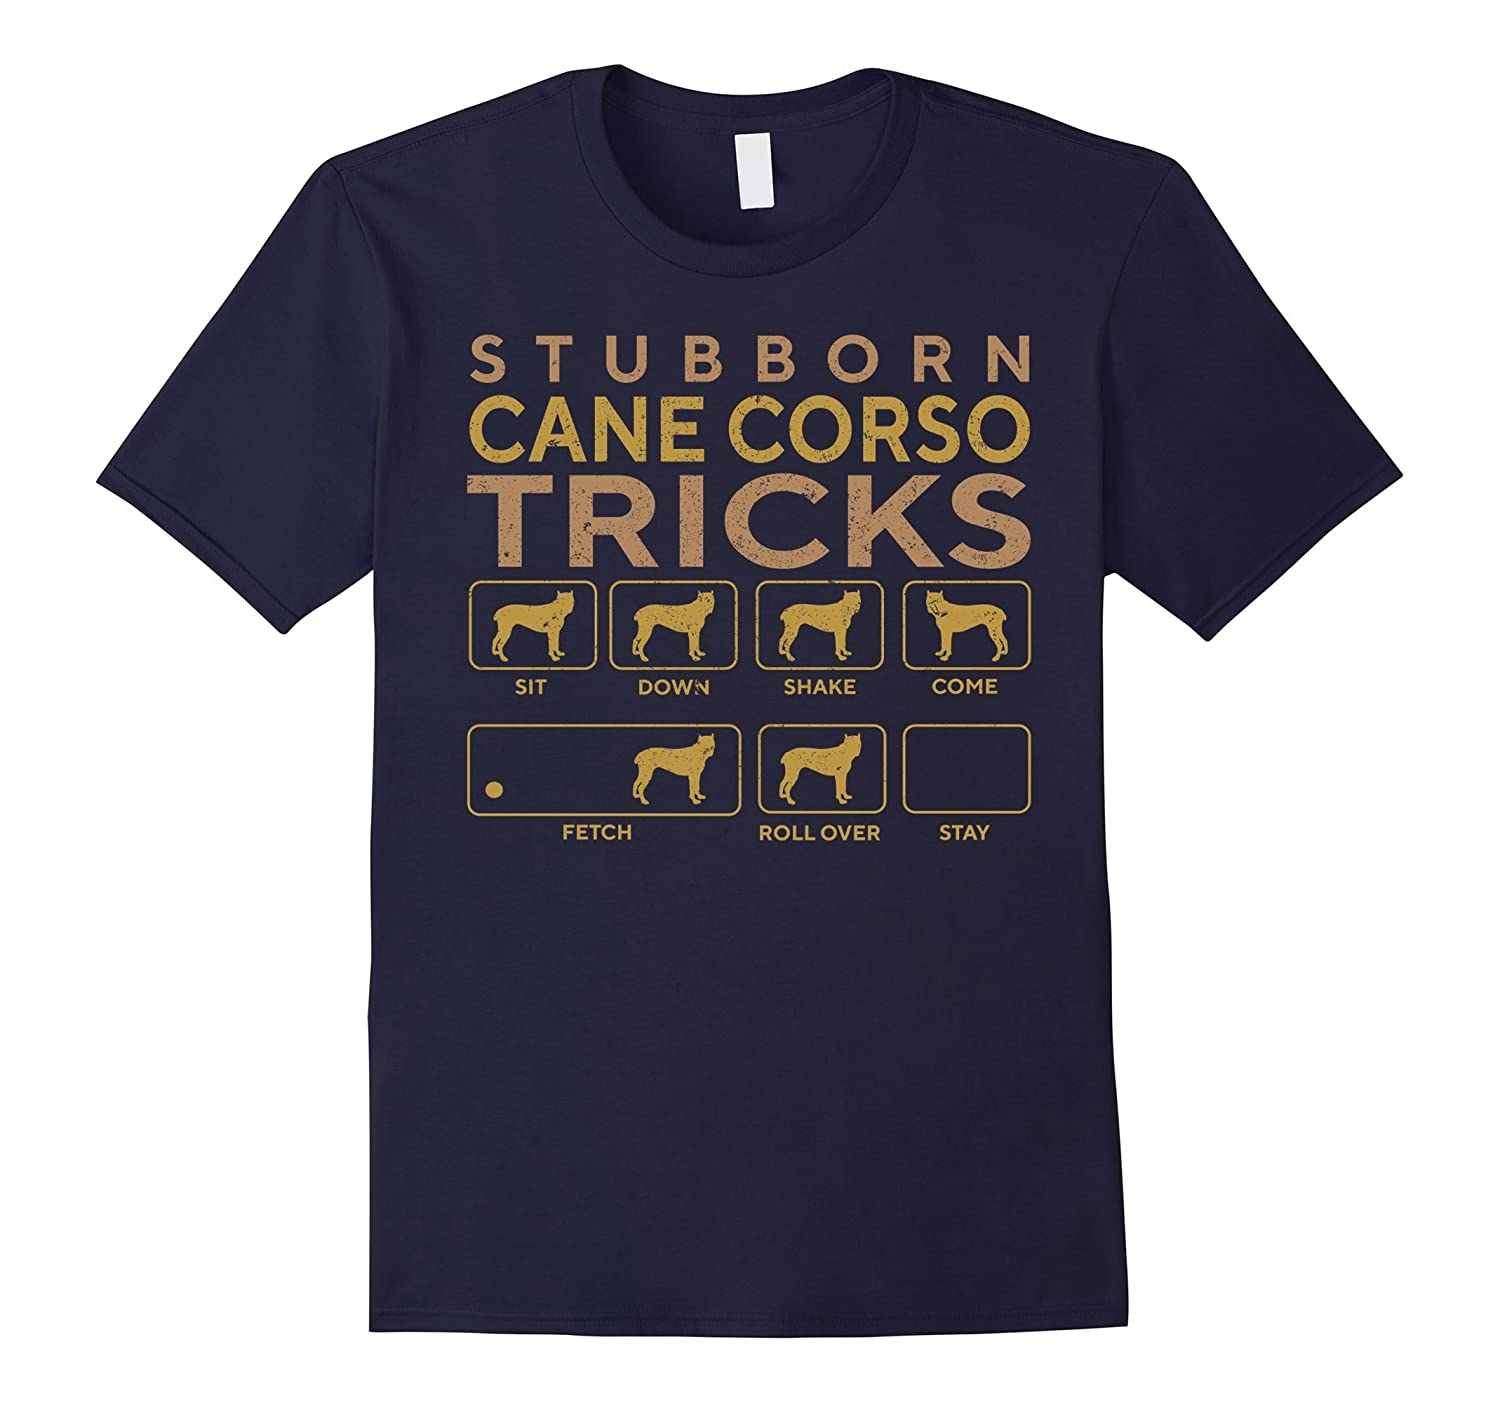 Stubborn Cane Corso Tricks Funny T-shirt Gift For Dog Lovers-T-Shirt